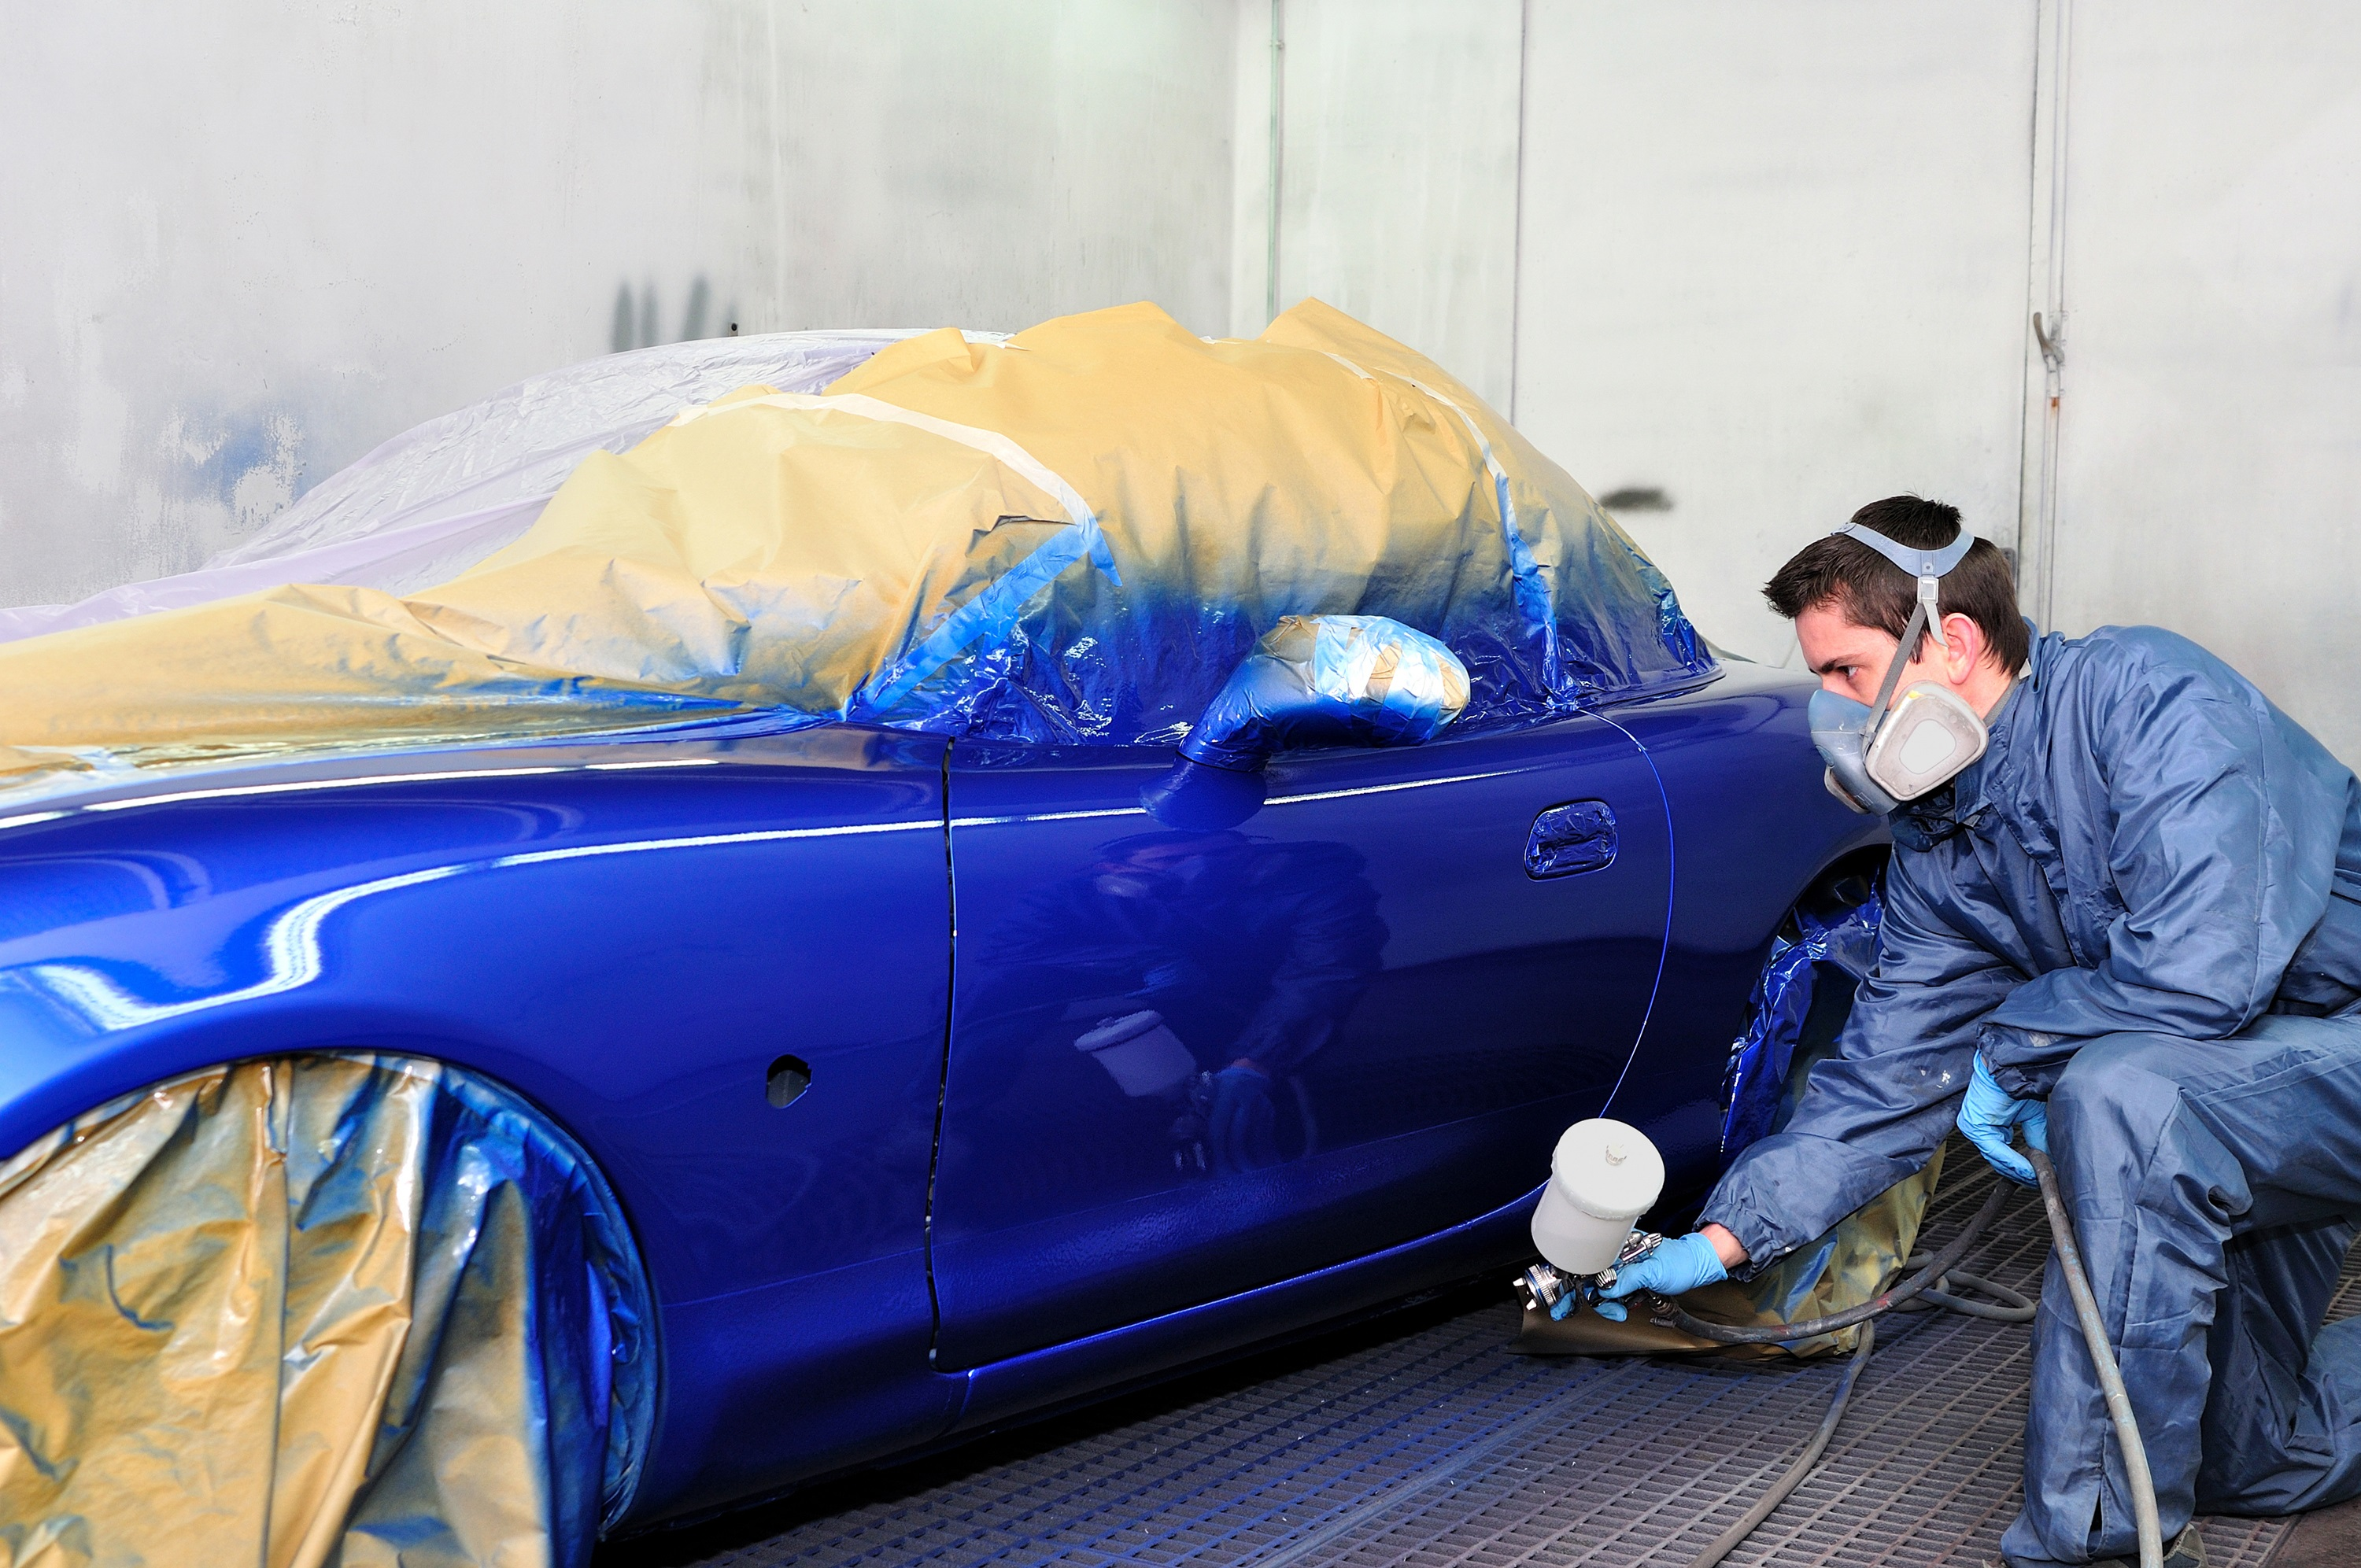 Vehicle Paint Manufacturers Buy Automotive Paint For Your Car And Give It A New Look